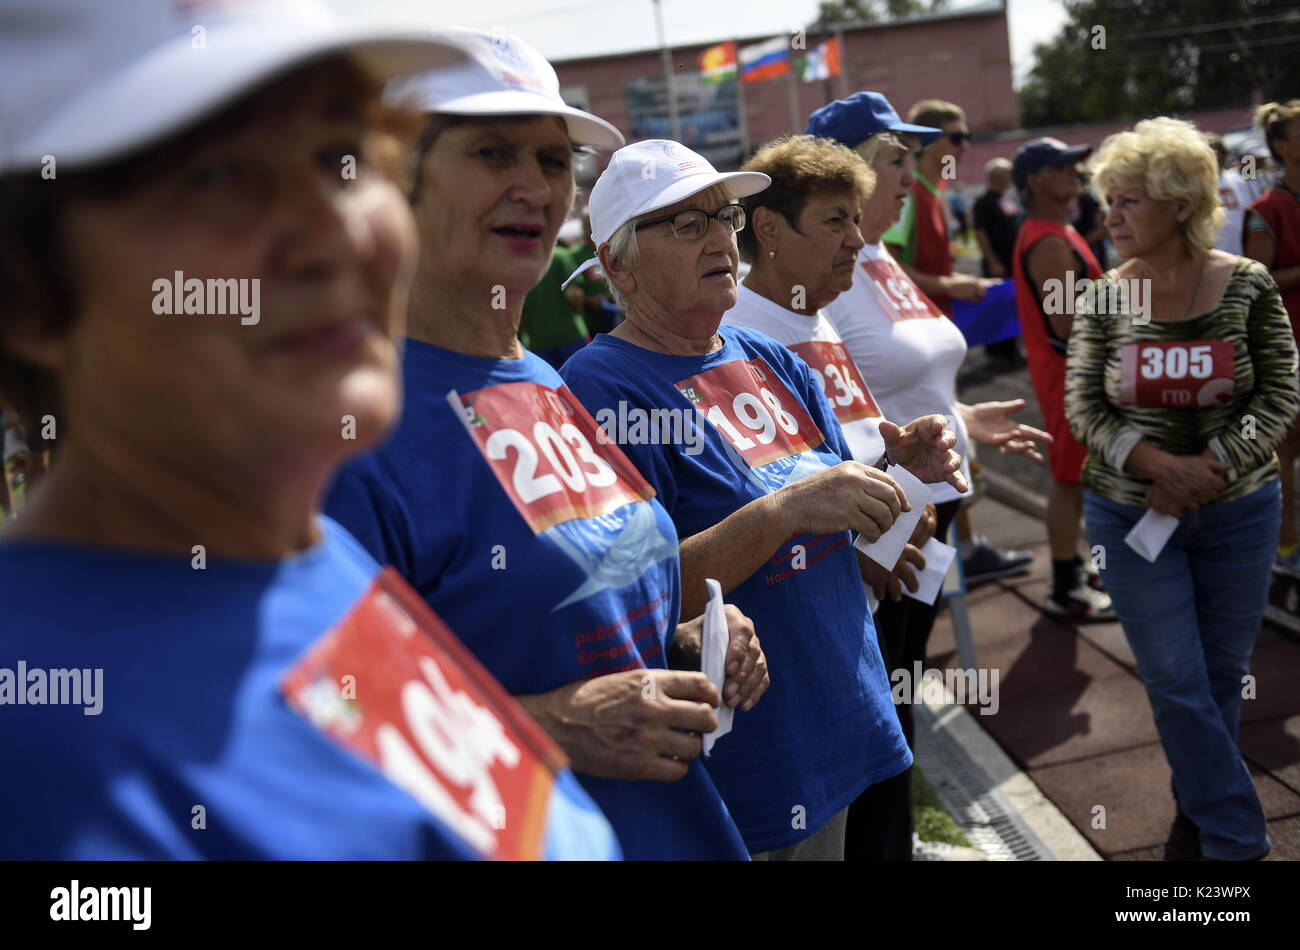 Novosibirsk Region, Russia. 30th Aug, 2017. Elderly people take Soviet-era physical fitness tests in the village of Kochenevo. A fitness programme 'Ready for Labour and Defence' [known by Russian acronym GTO] introduced by Joseph Stalin in the 1930s to get the nation into shape has been recently revived in Russia. Credit: Kirill Kukhmar/TASS/Alamy Live News - Stock Image